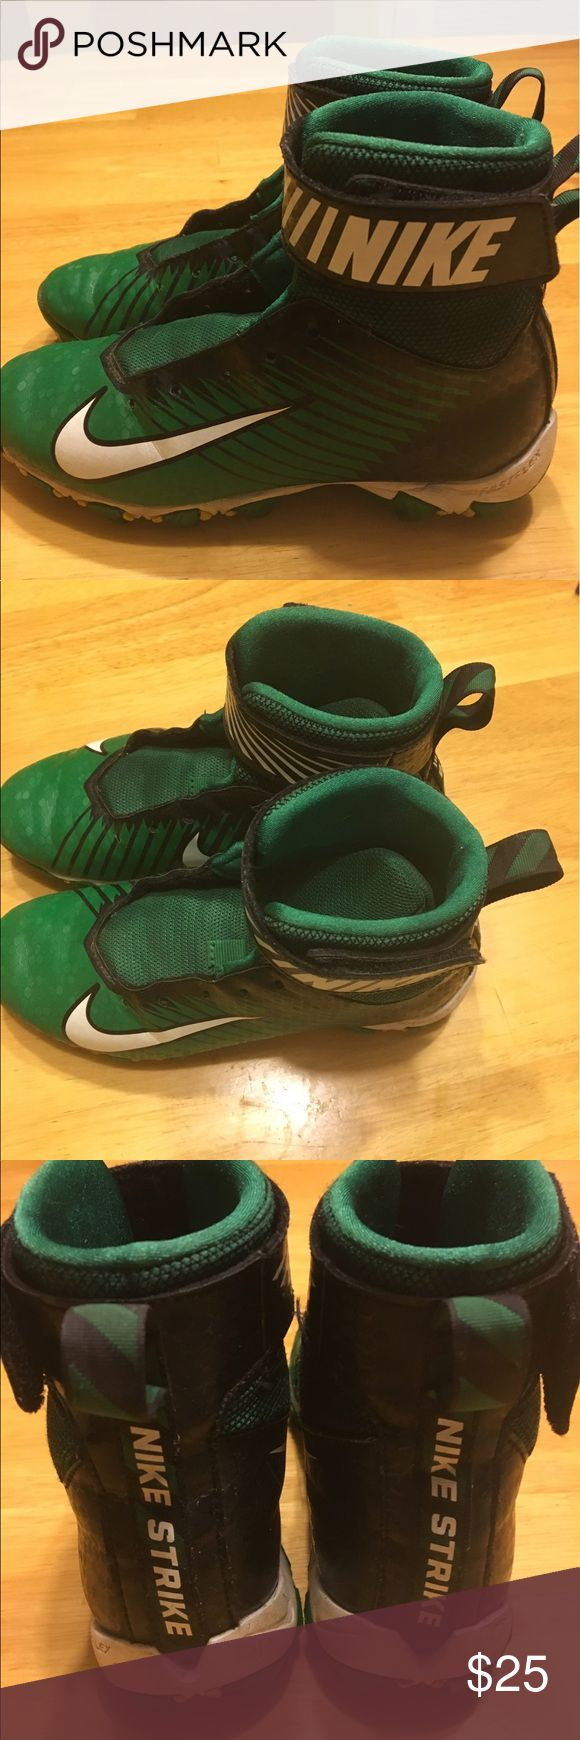 Boys football cleats Nike Nike Strike high top football cleats - green and black. Boys size 2 - only worn half a season. Good condition with lots of life left. Just needs shoestrings. Nike Other